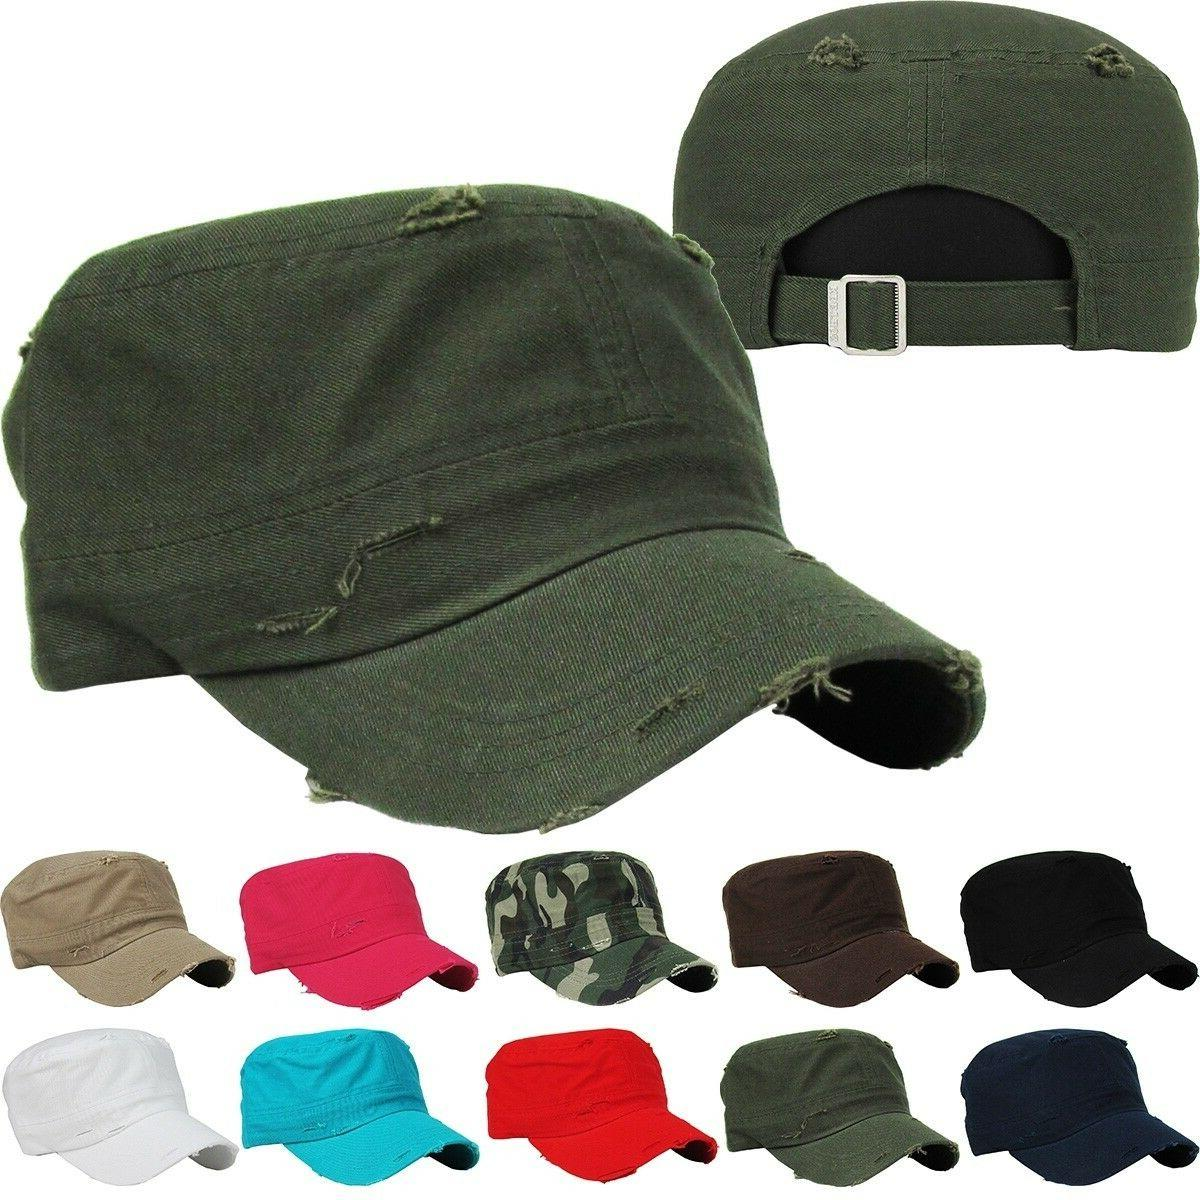 KBETHOS CADET DISTRESSED ADJUSTABLE CAPs HATs New Army Cotto